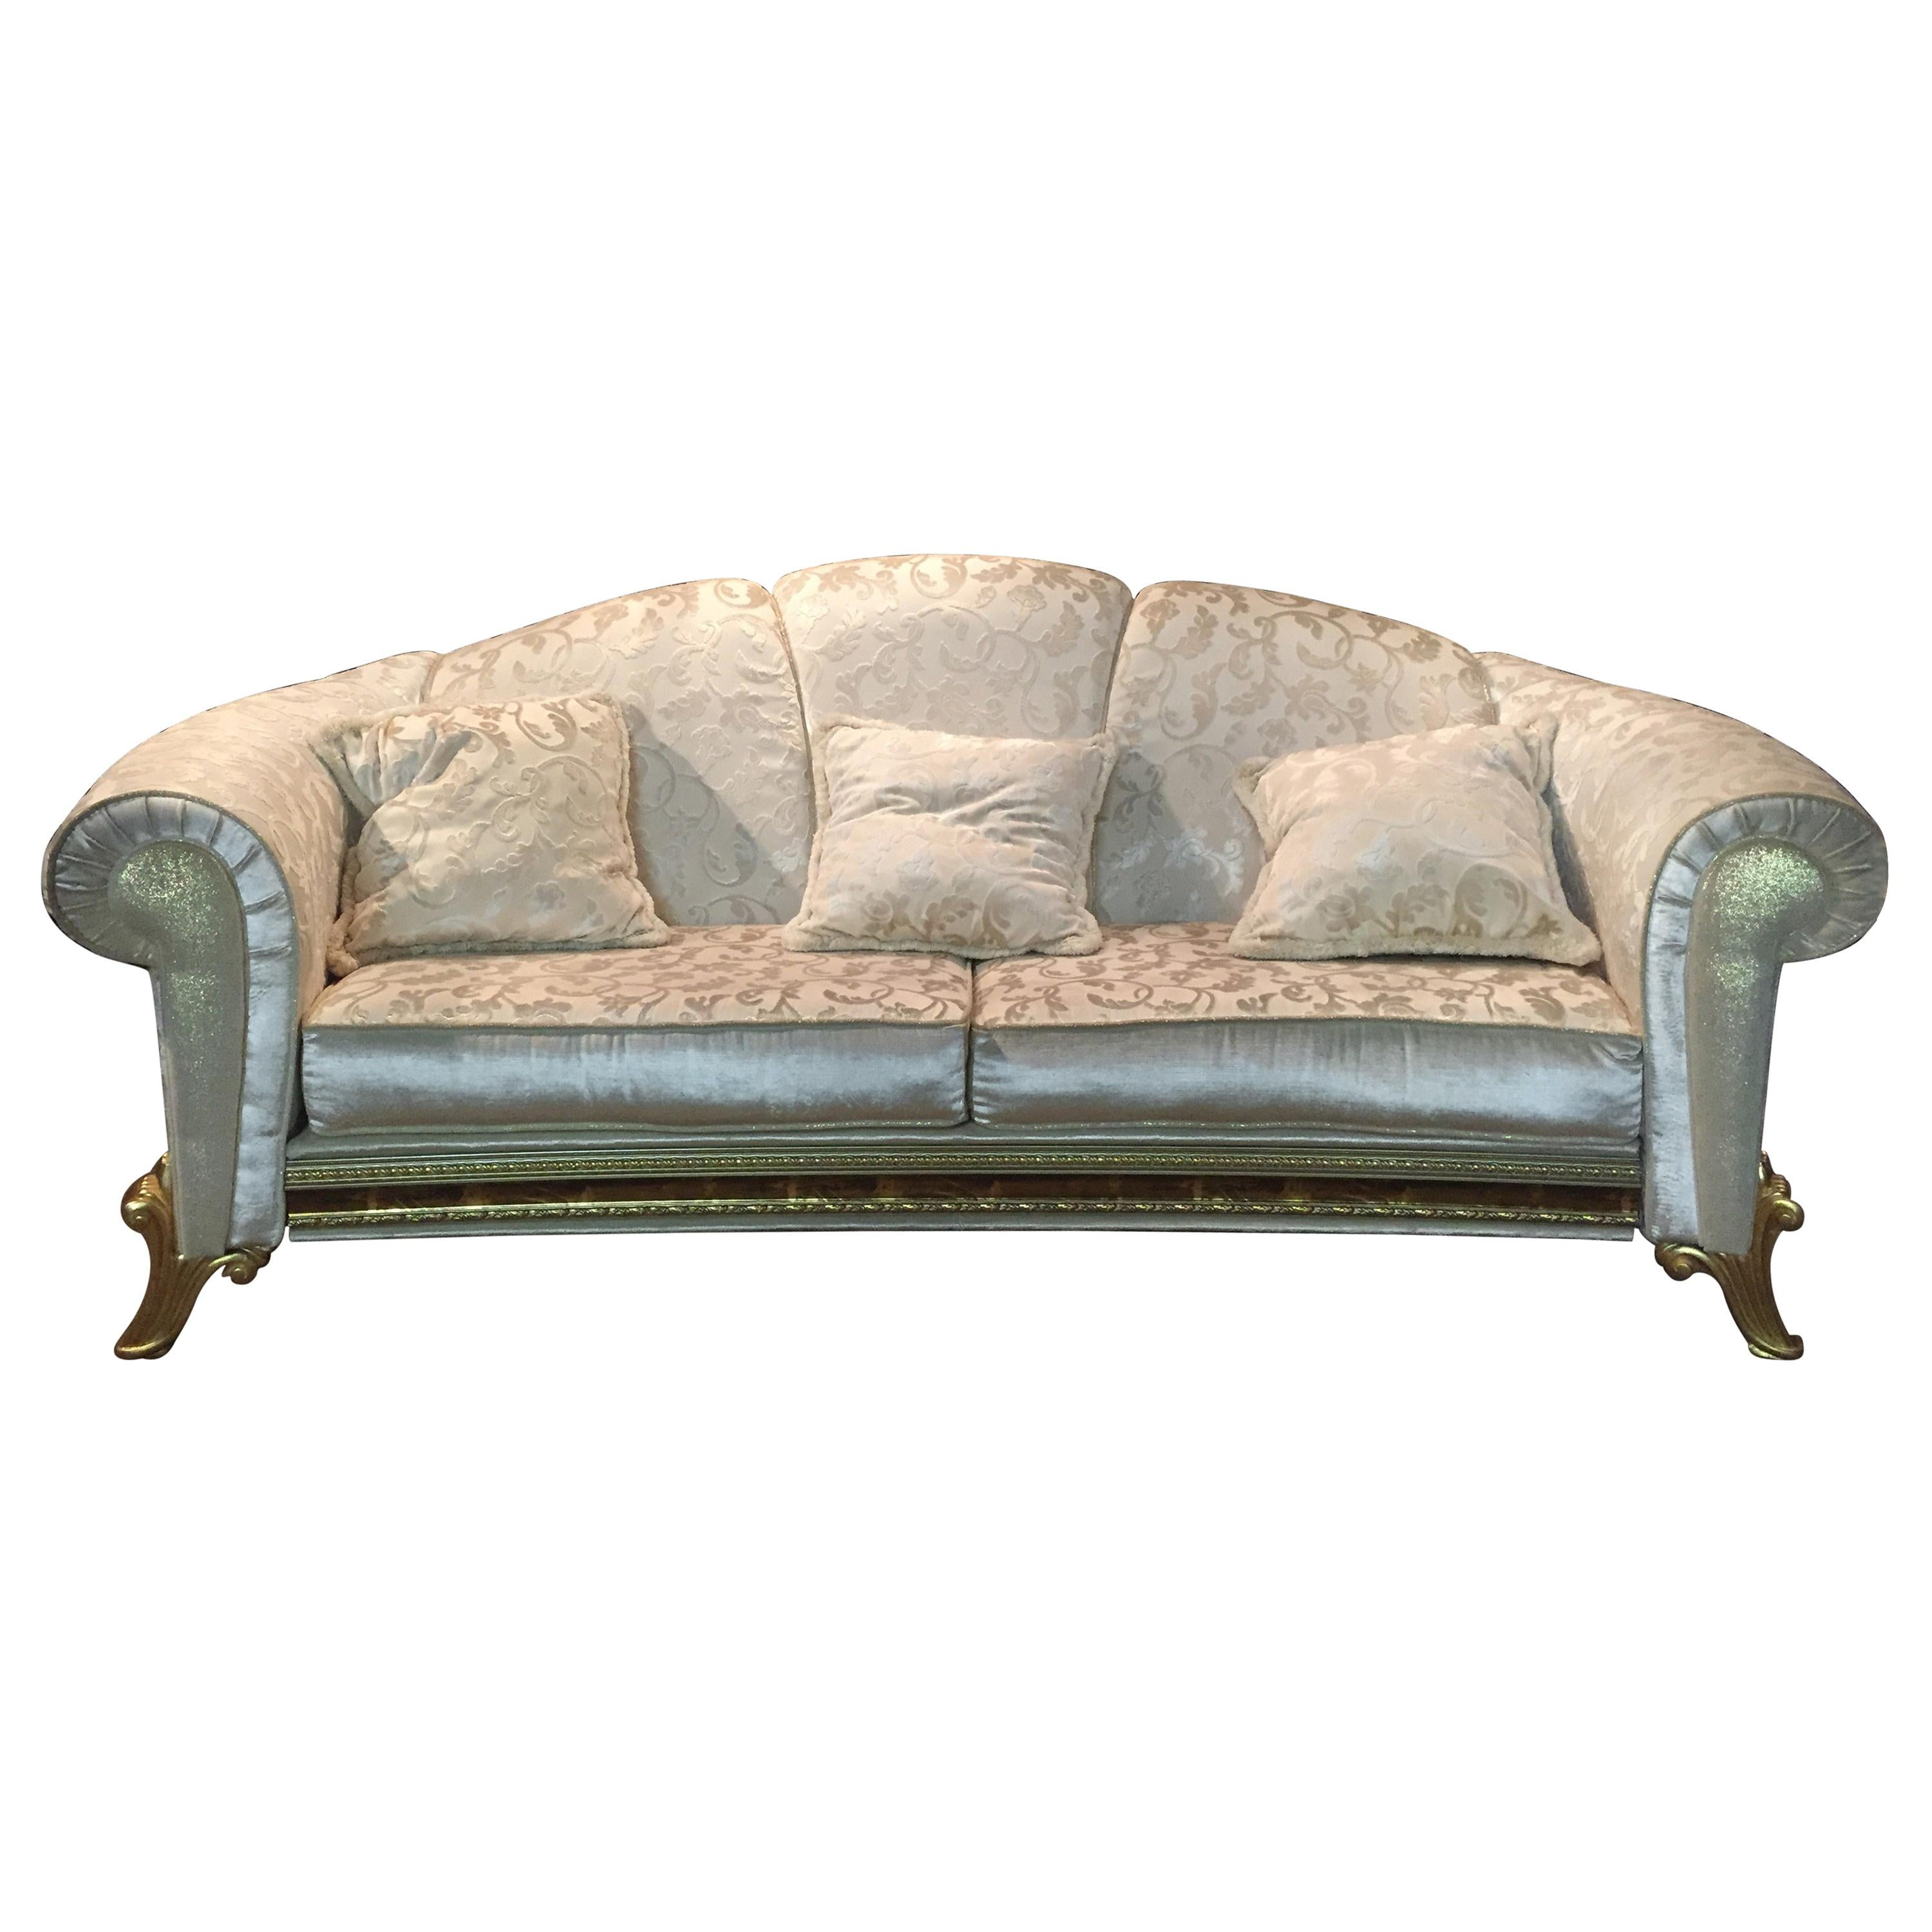 Designer Couch Designer Couch From Italy High Quality Fabric Arredo Classic